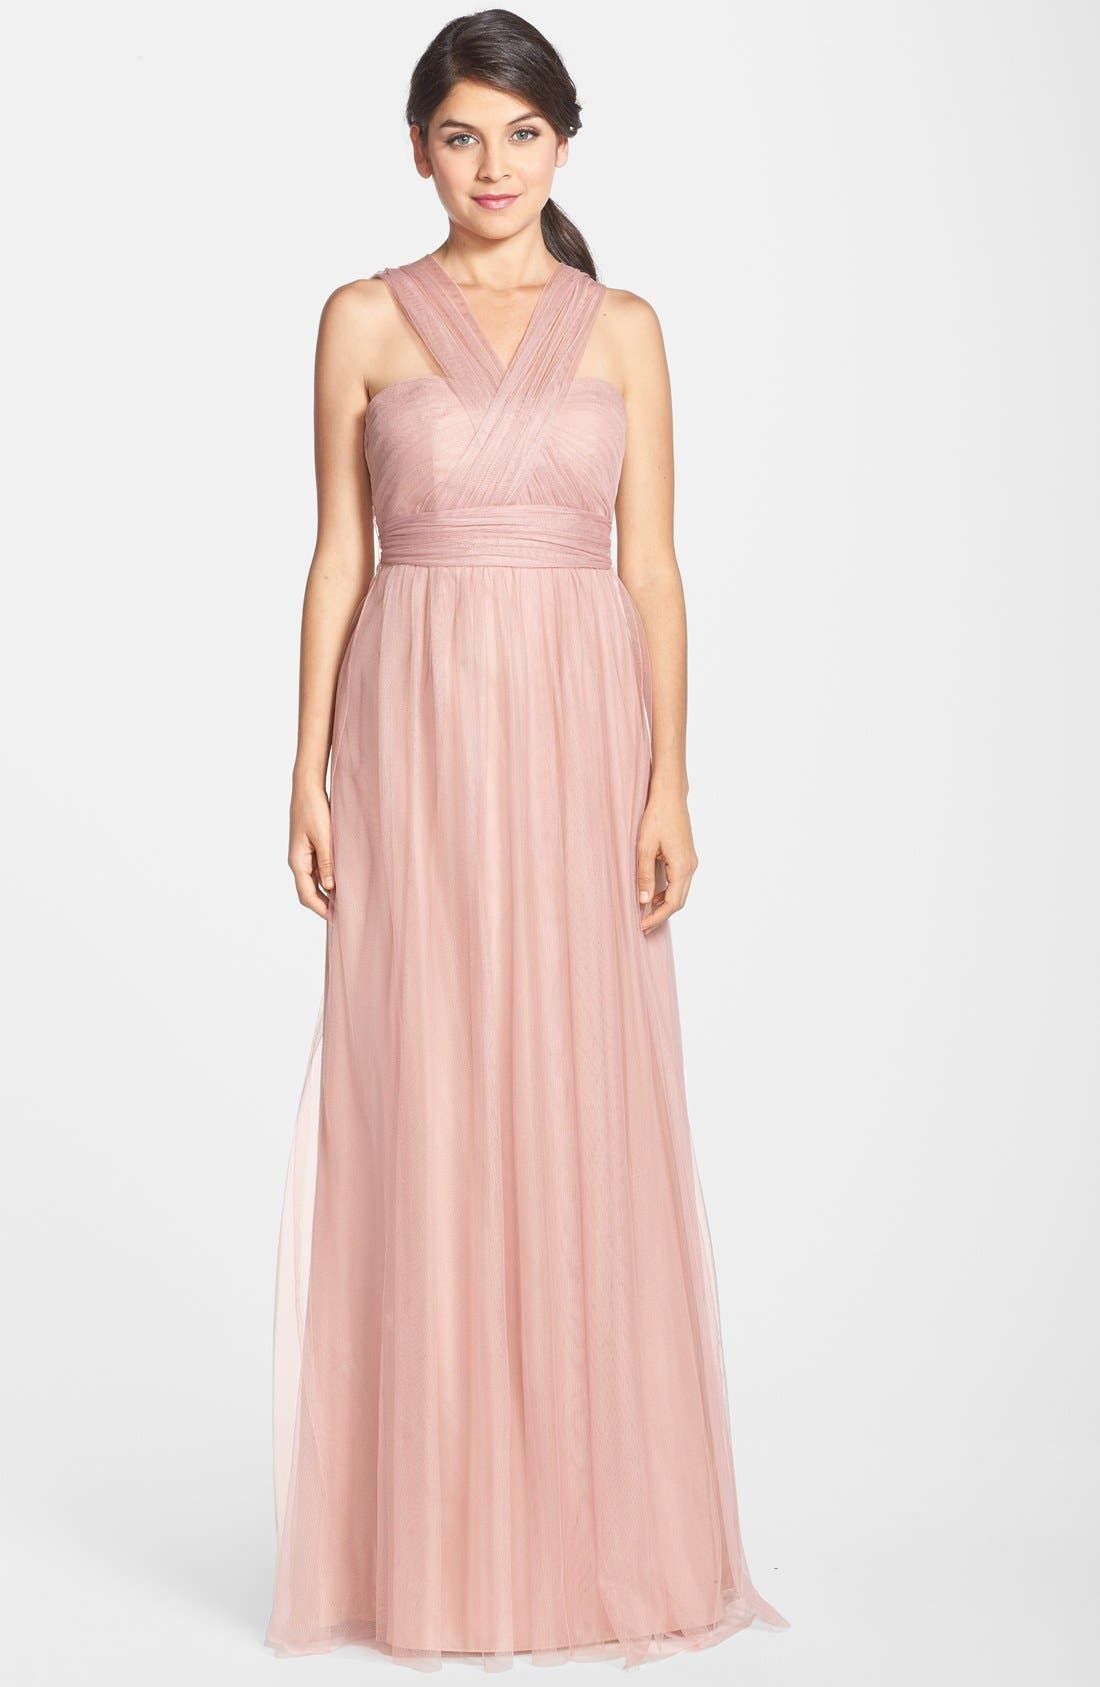 Annabelle Convertible Tulle Column Dress,                             Alternate thumbnail 128, color,